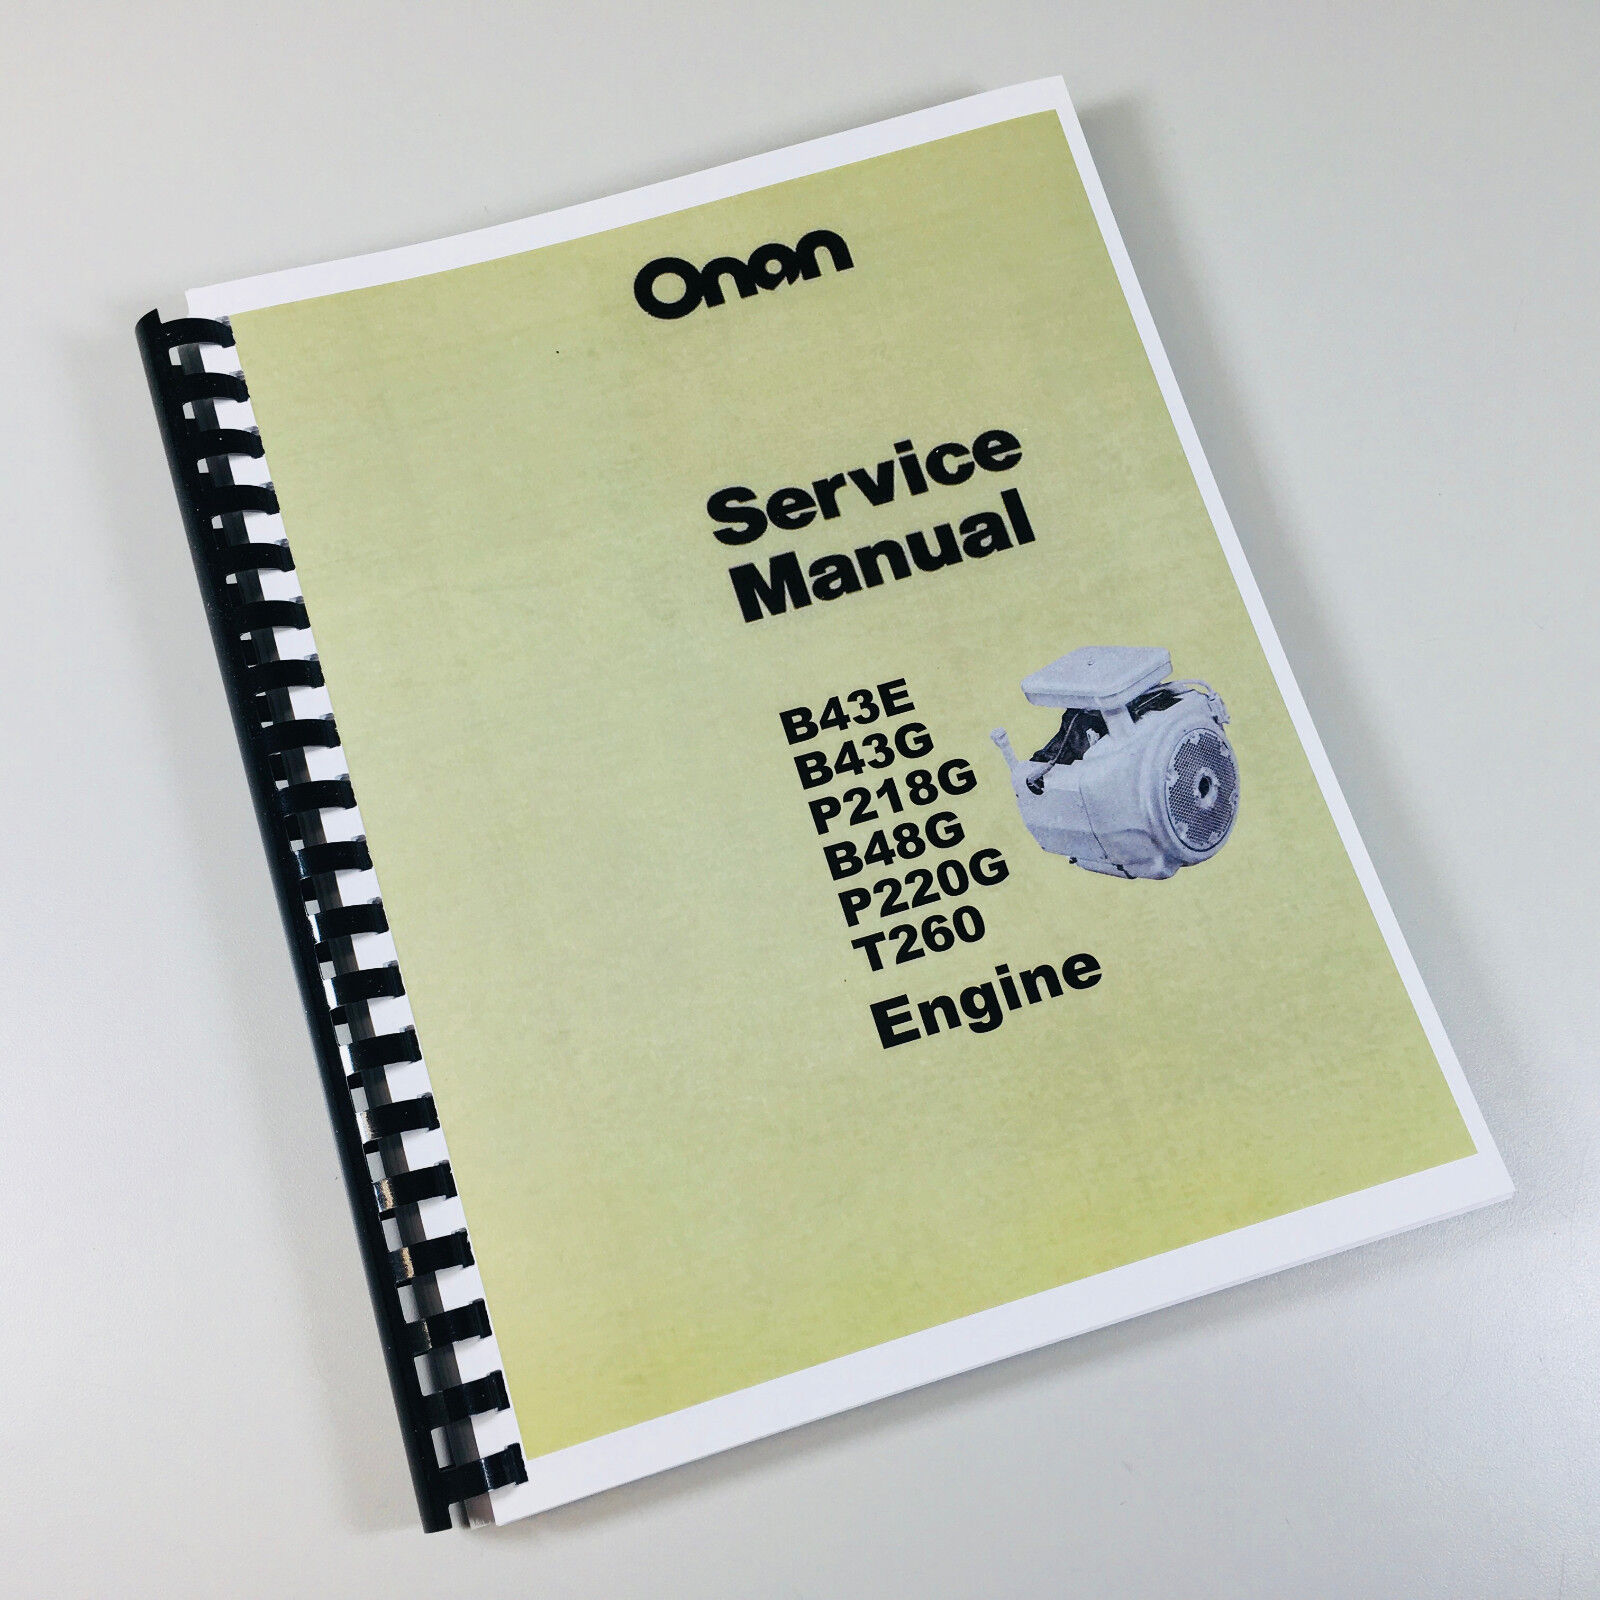 JD F910 and more. This comprehensive manual includes